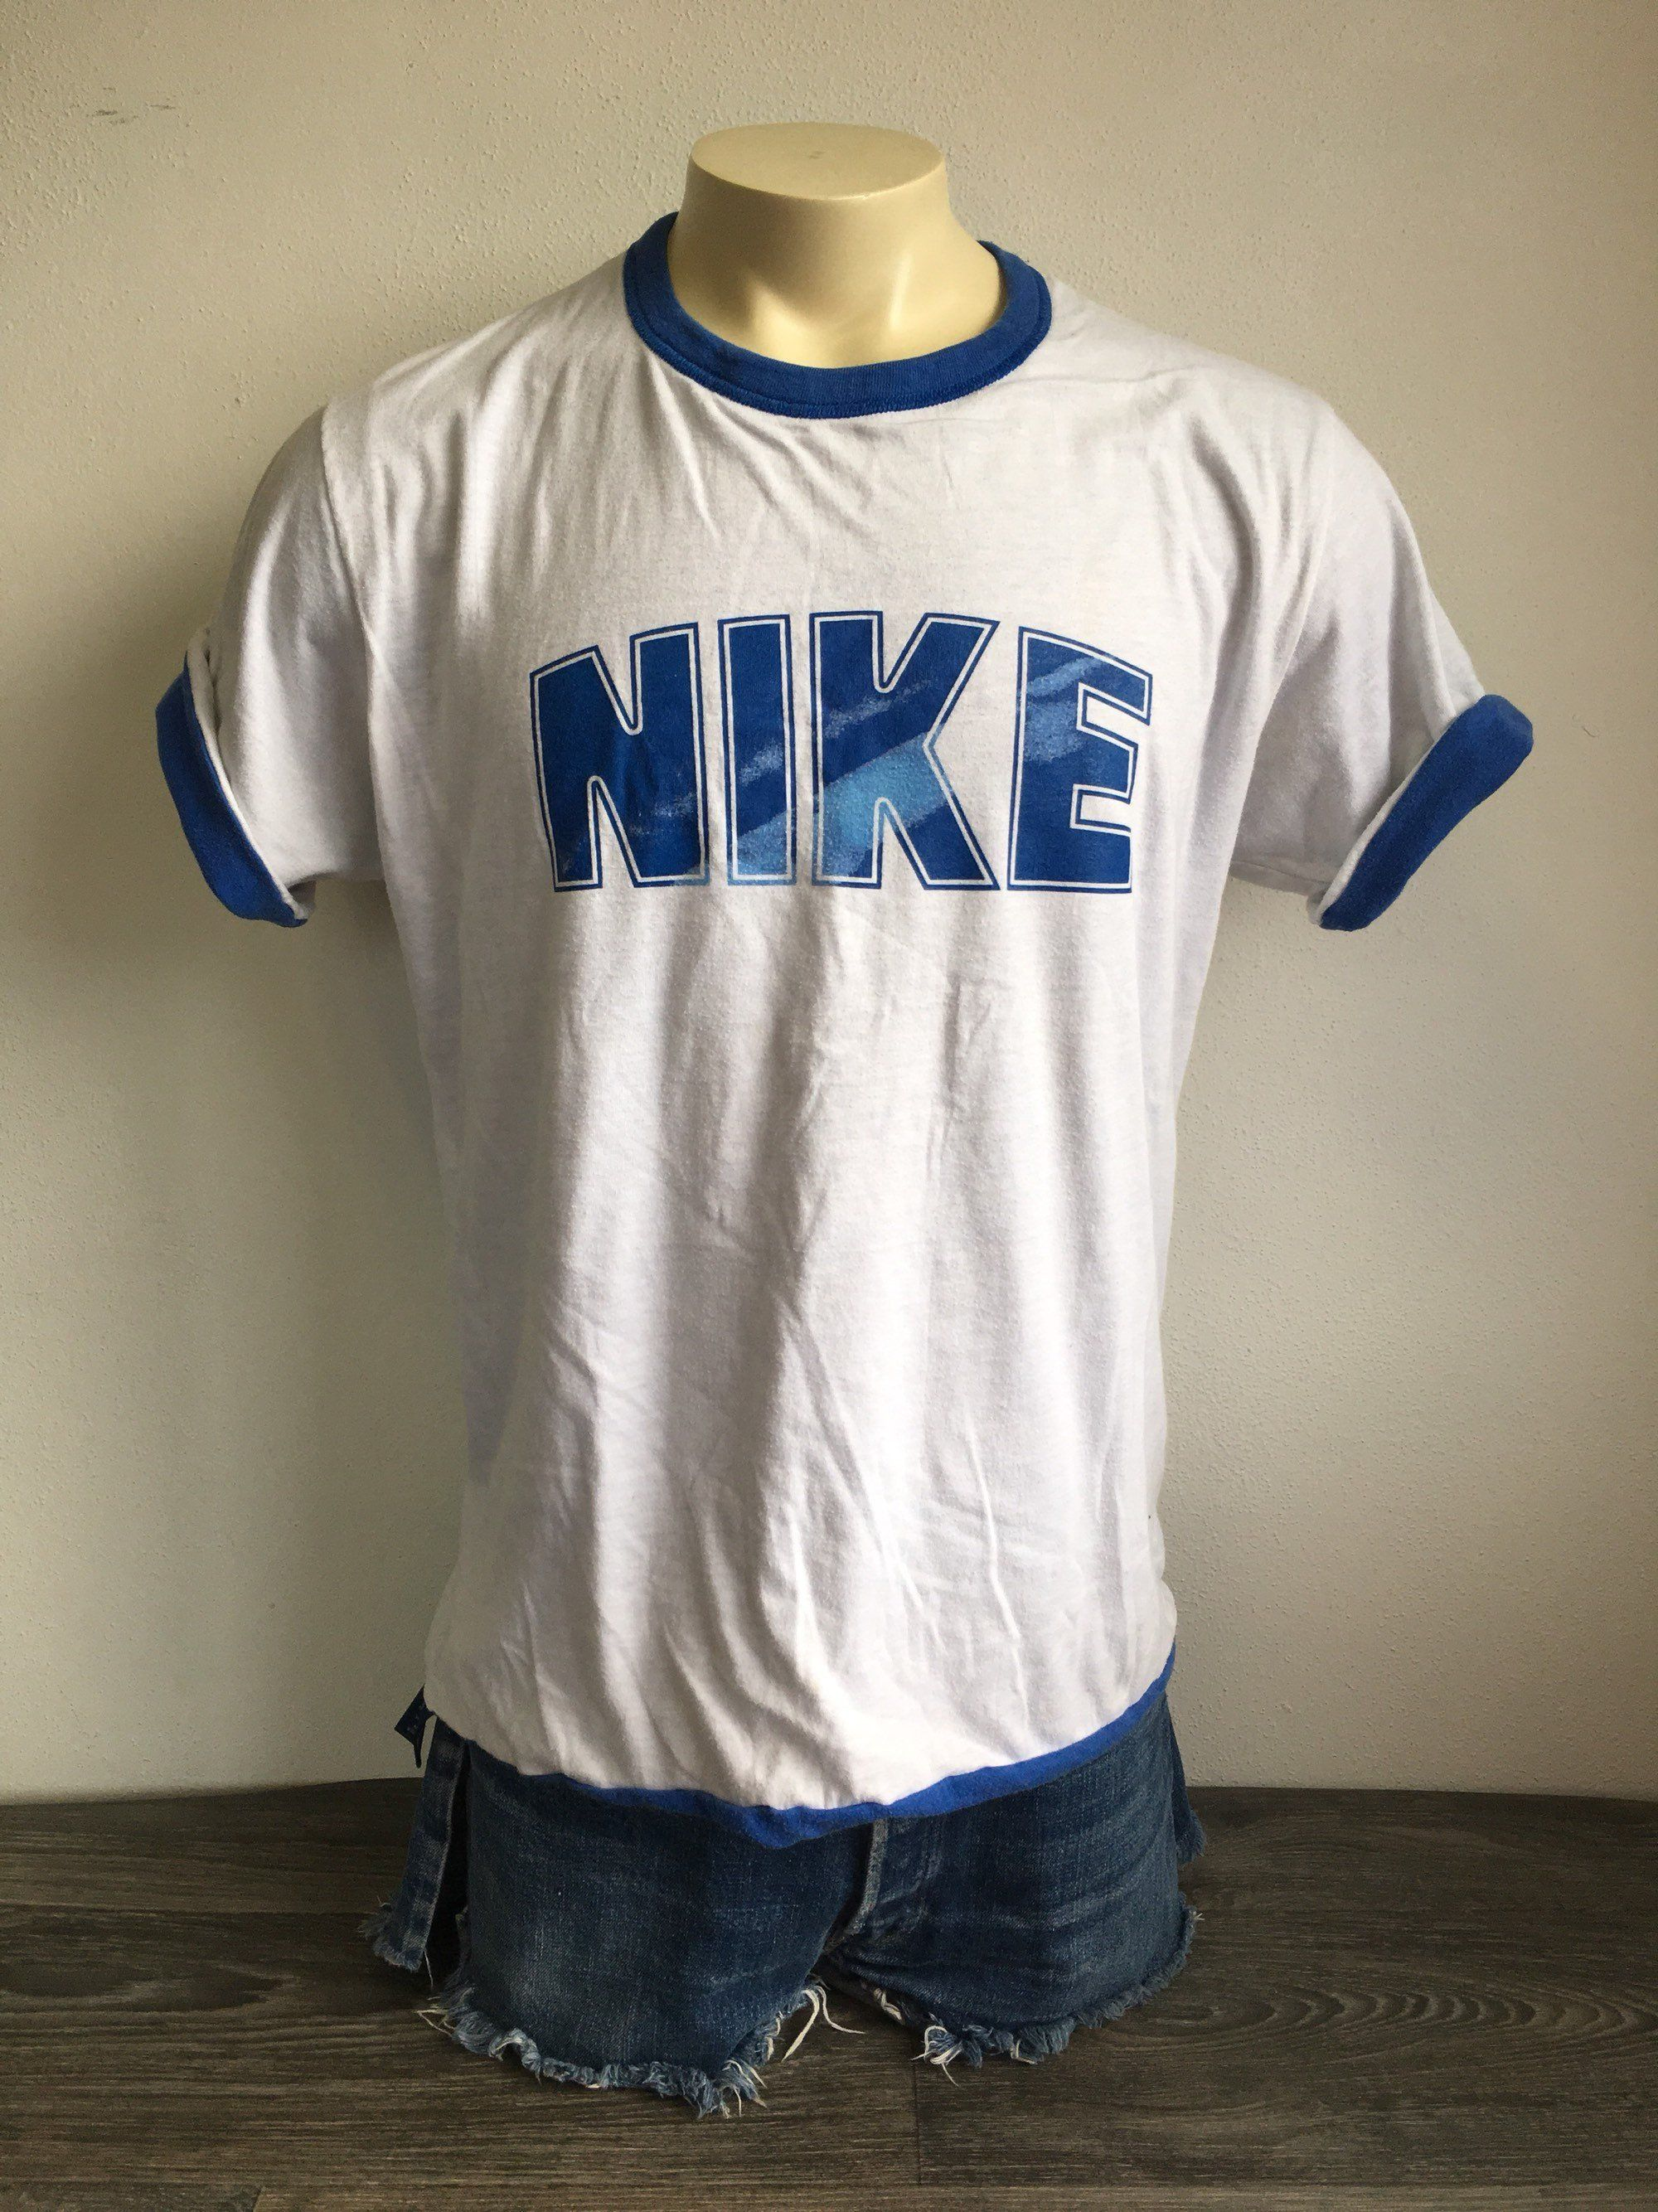 dfbf763e9b3 Vintage NIKE Shirt 80s Blue Tag Reversible Big DOME Block Letters Gym Team  Tshirt UsA Made XL Rare! by sweetVTGtshirt on Etsy